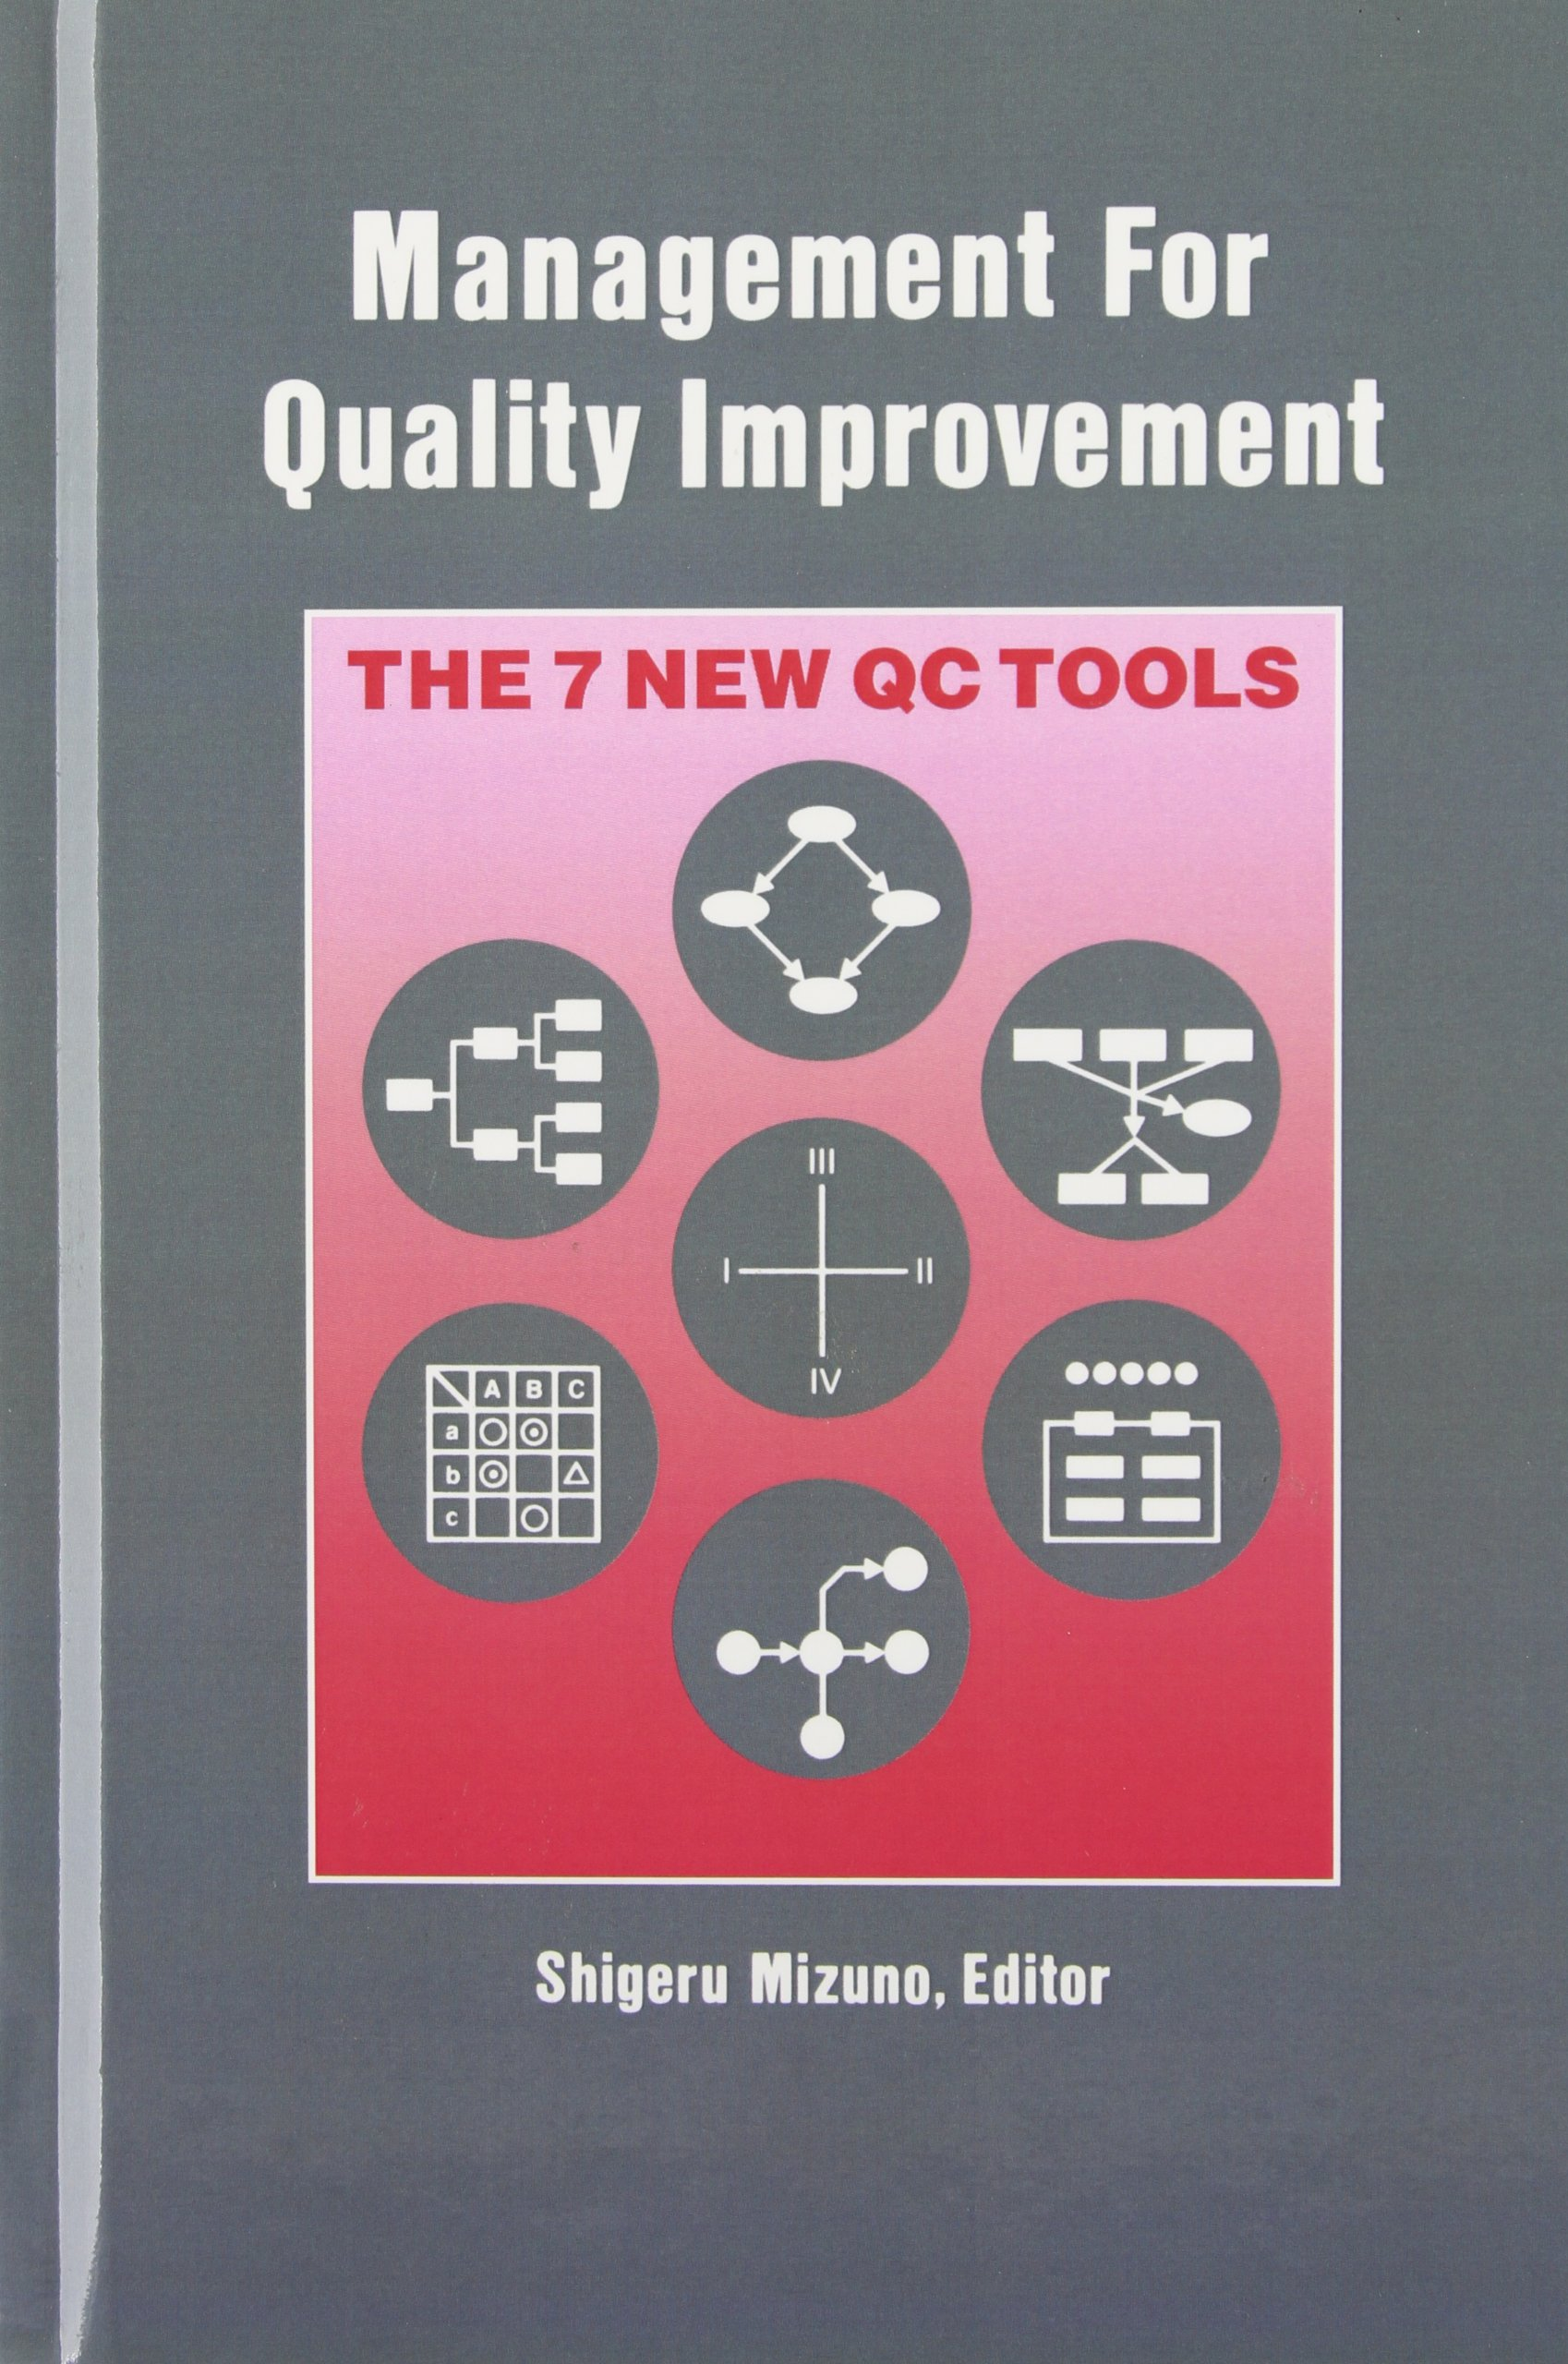 Management For Quality Improvement  The 7 New QC Tools  The New 7 Quality Control Tools  Productivity's Shopfloor